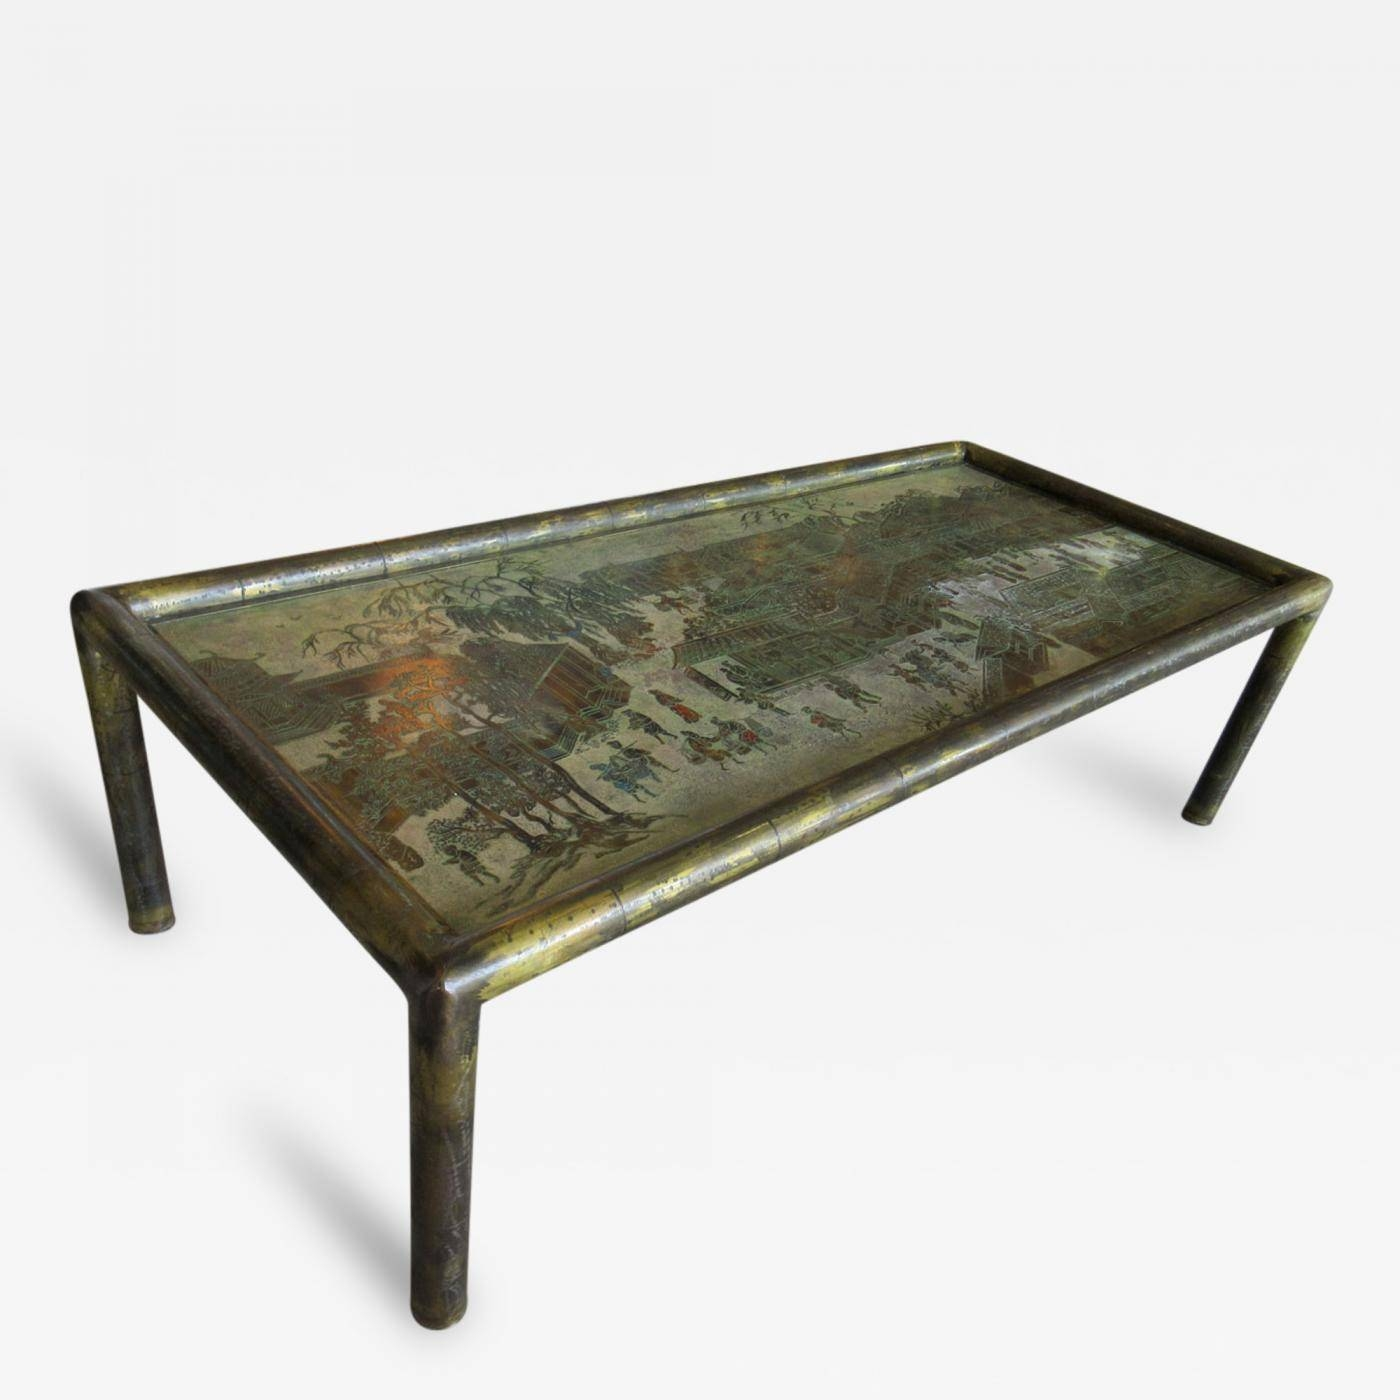 Coffee Table: Marvellous Bronze Coffee Table Designs Bonza Coffee regarding Bronze Coffee Tables (Image 10 of 30)